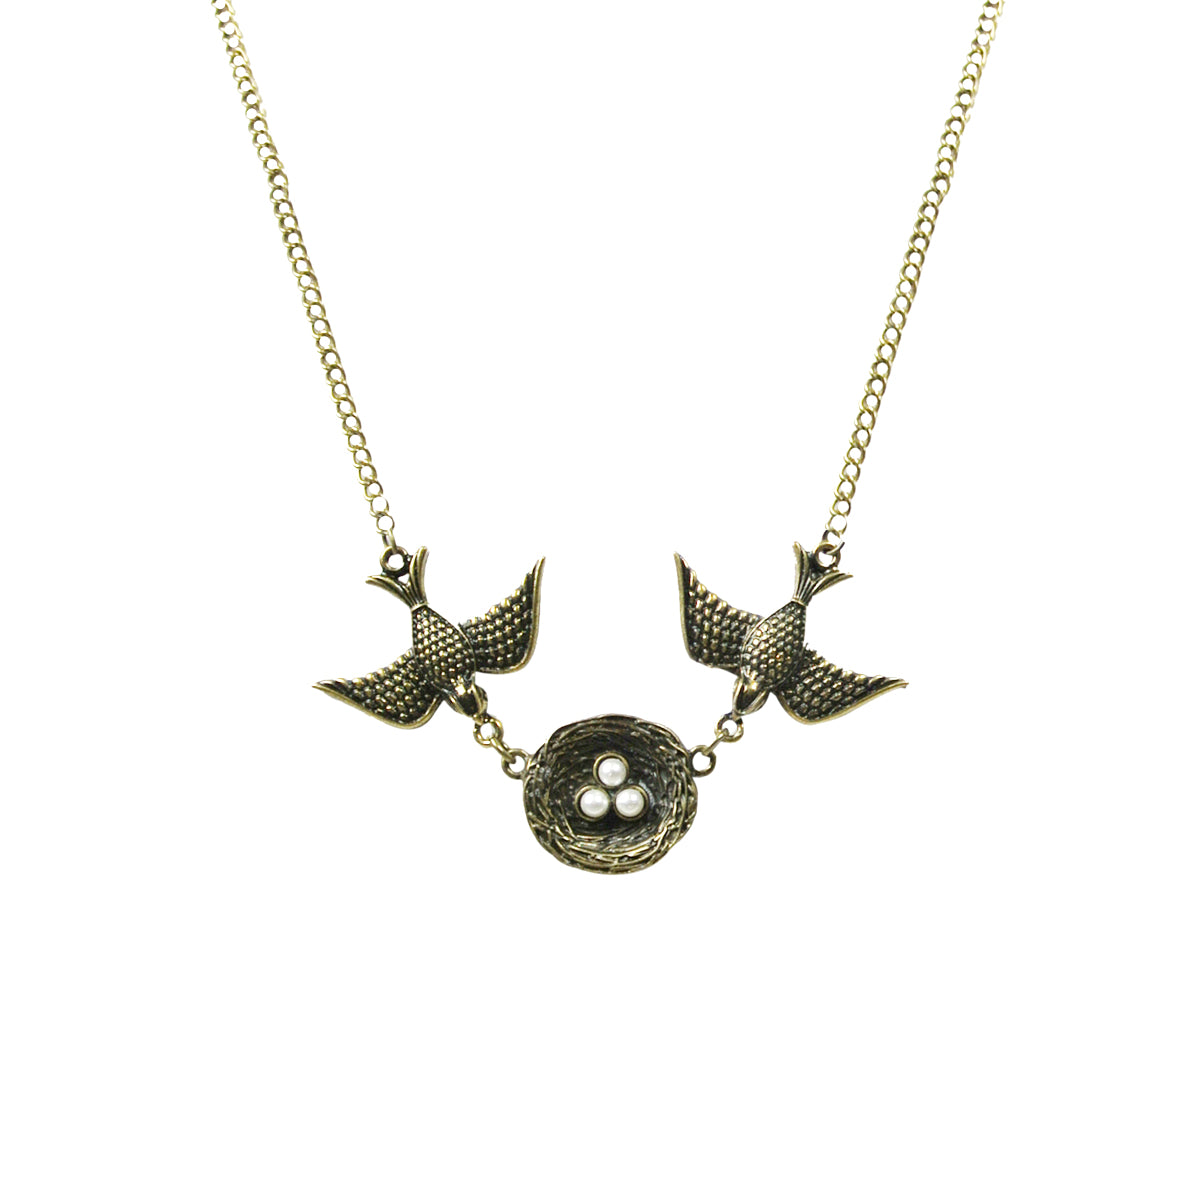 Vintage Swallows and Nest Pendant Necklace with Faux Pearl Eggs